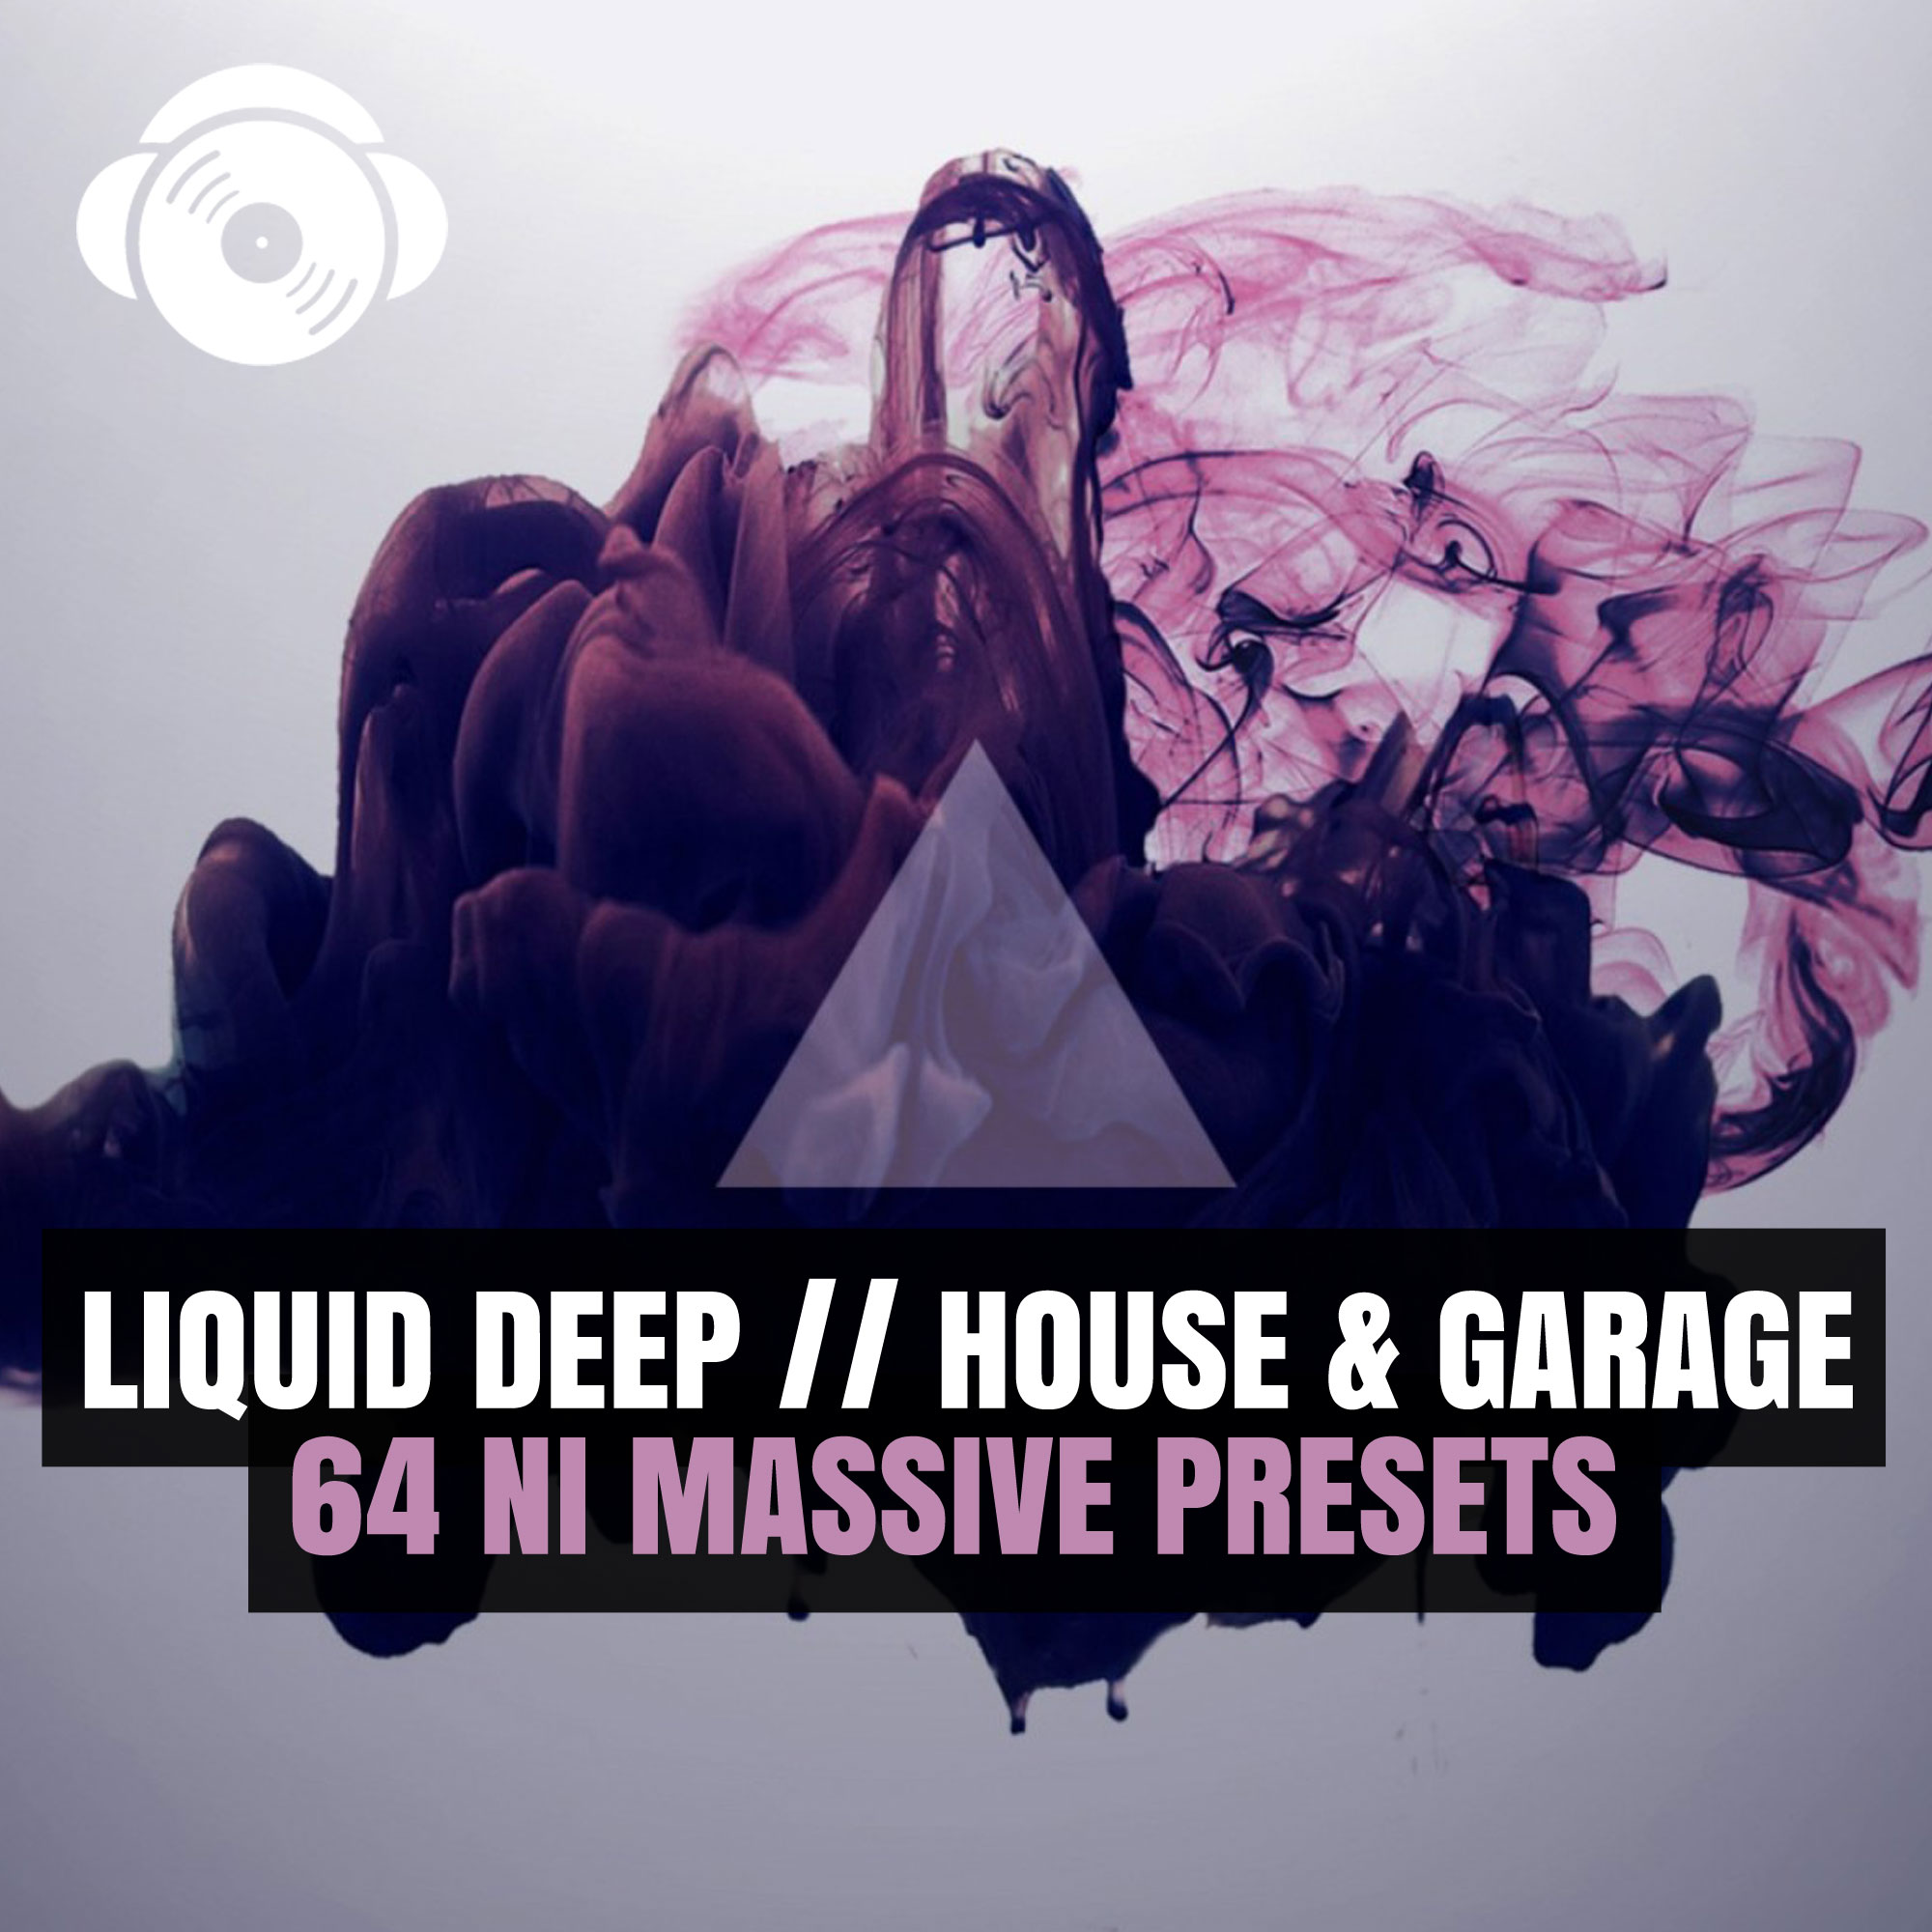 Liquid-Deep-House-Garage-2000x2000